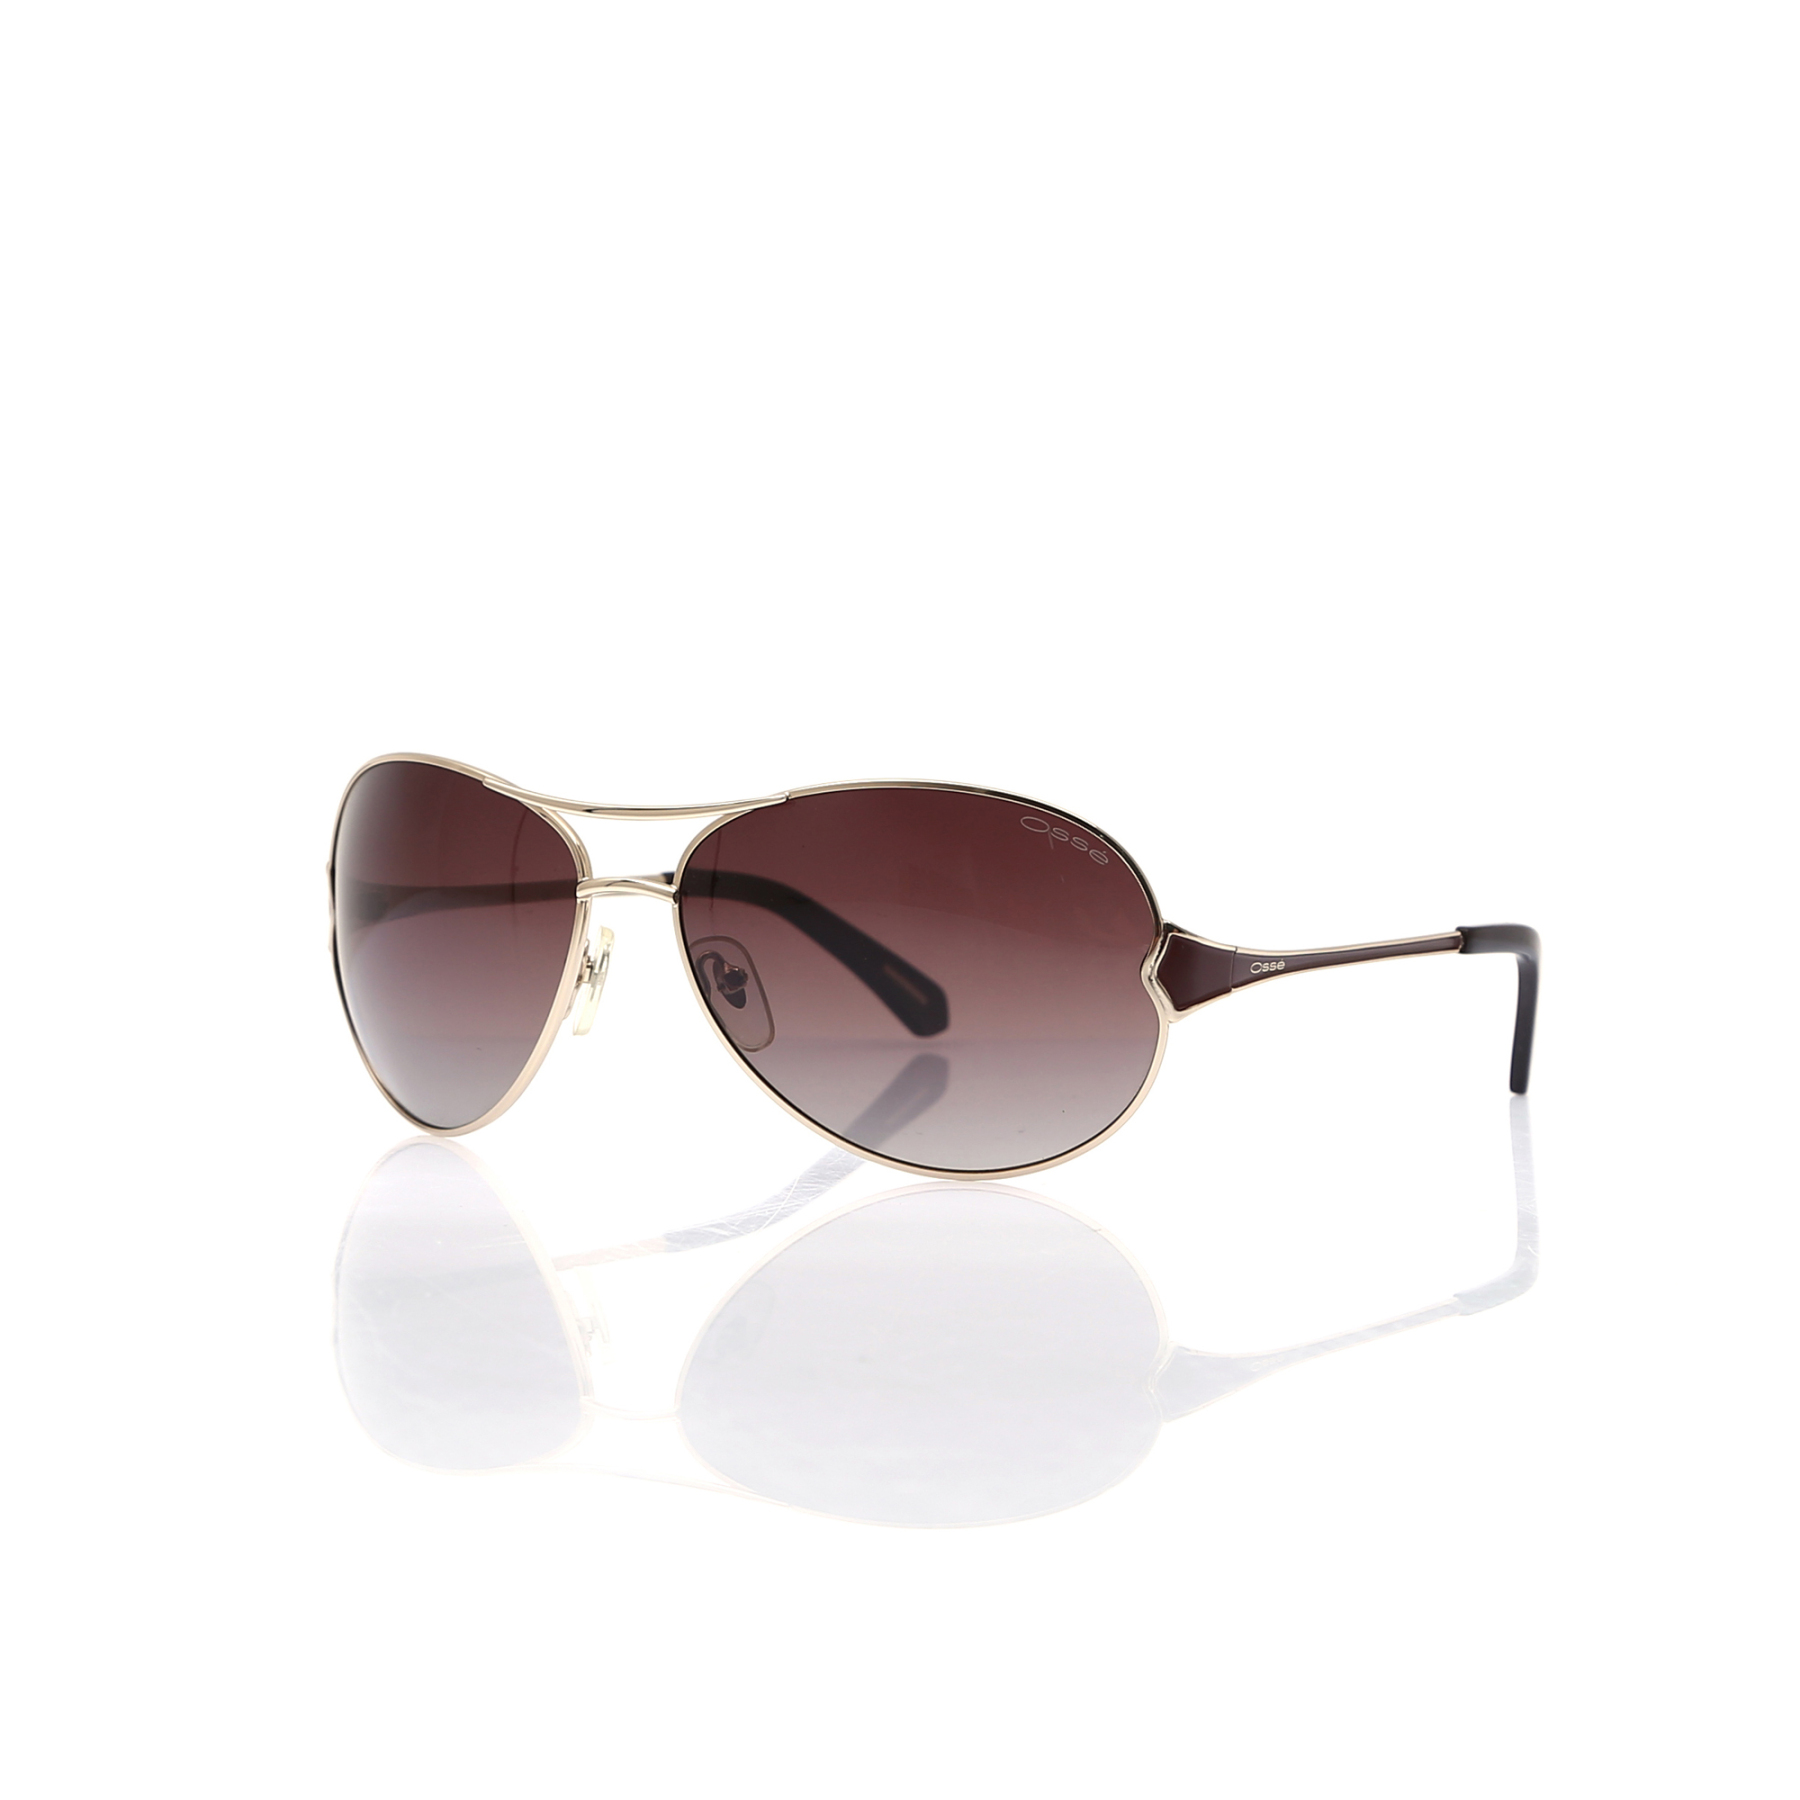 Women's sunglasses os 1585 02 metal gold organic oval aval 64-15-125 osse